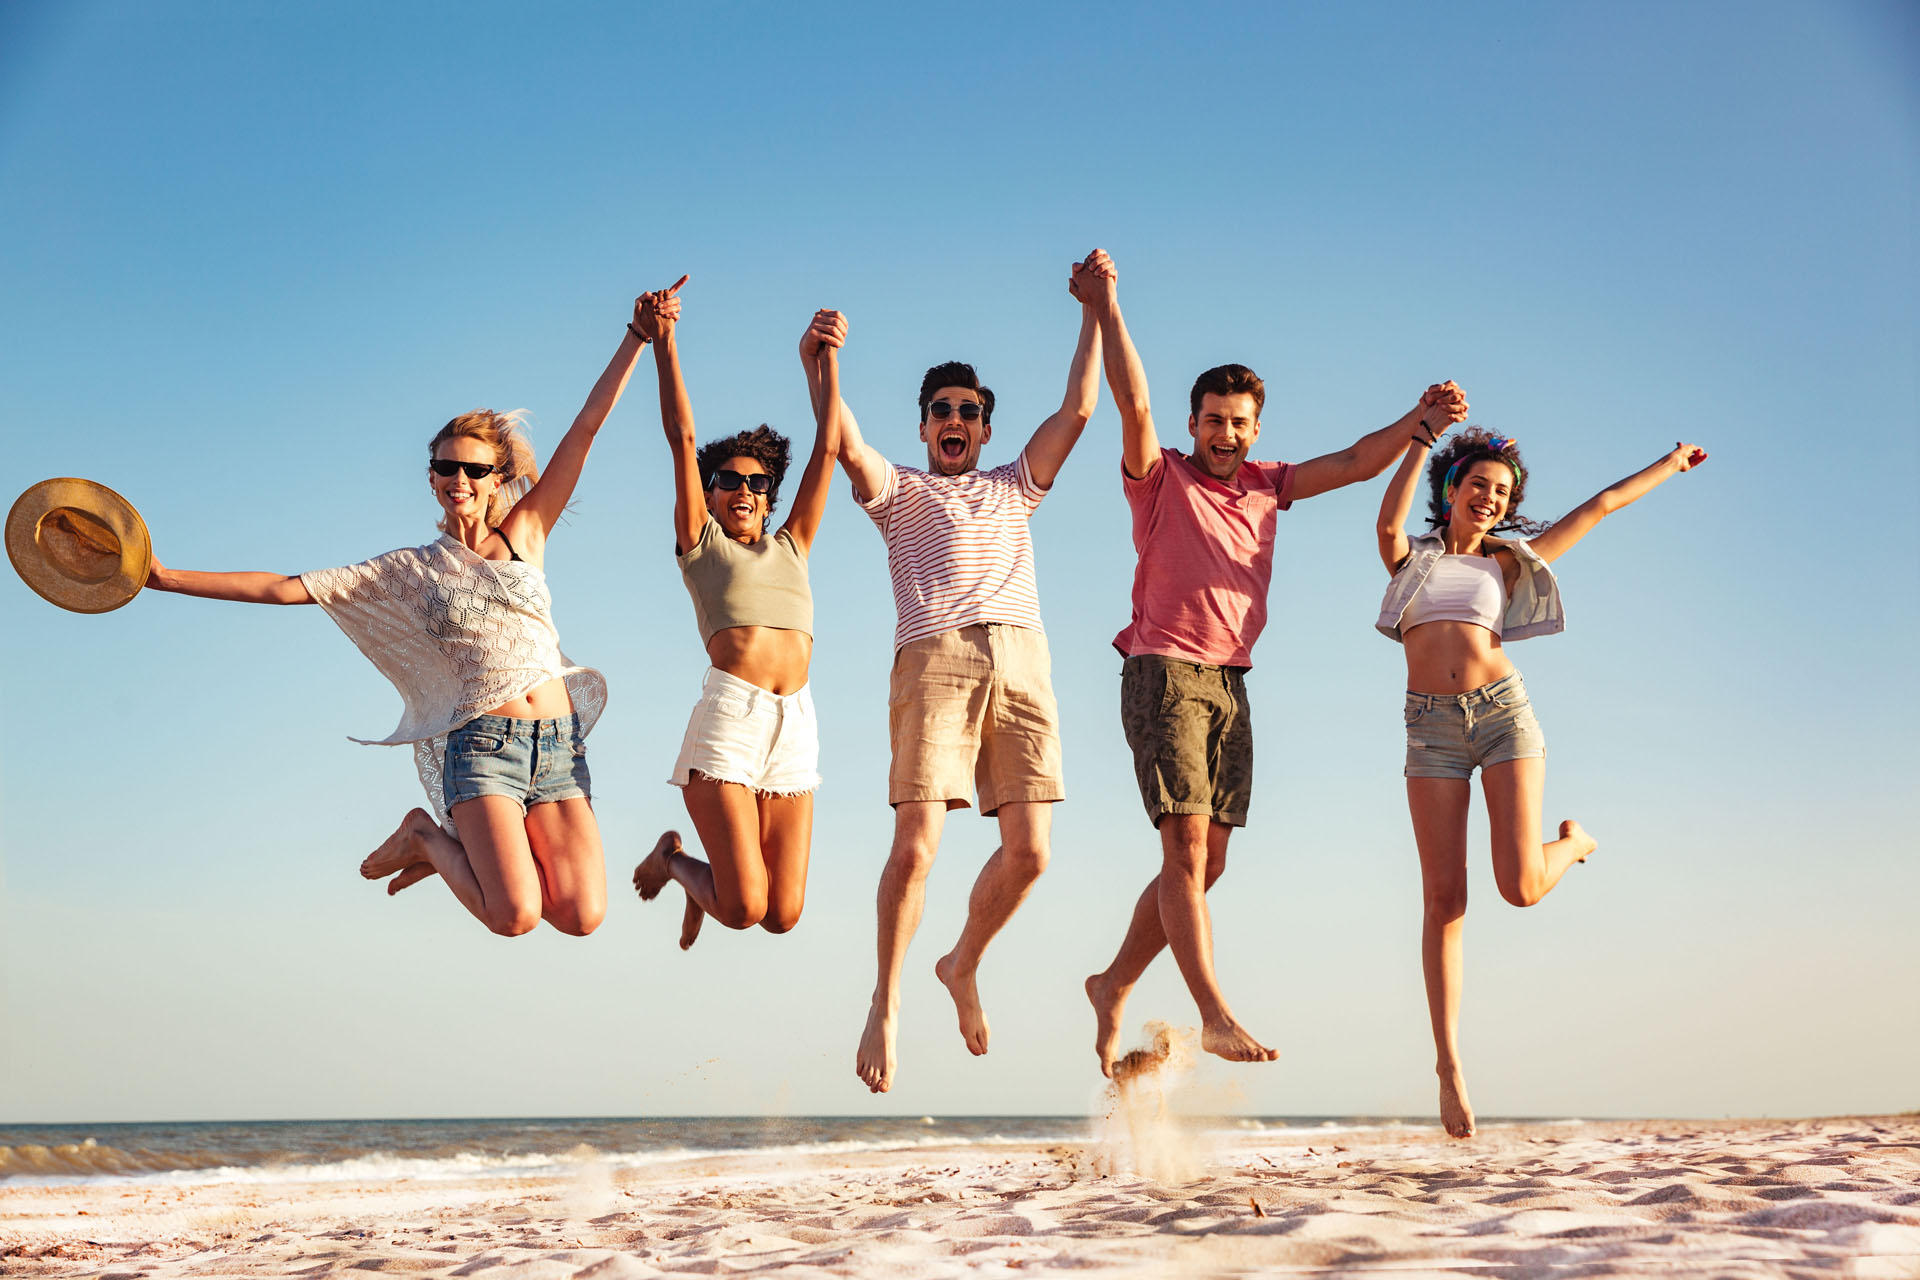 group of five young adults jumping together on beach